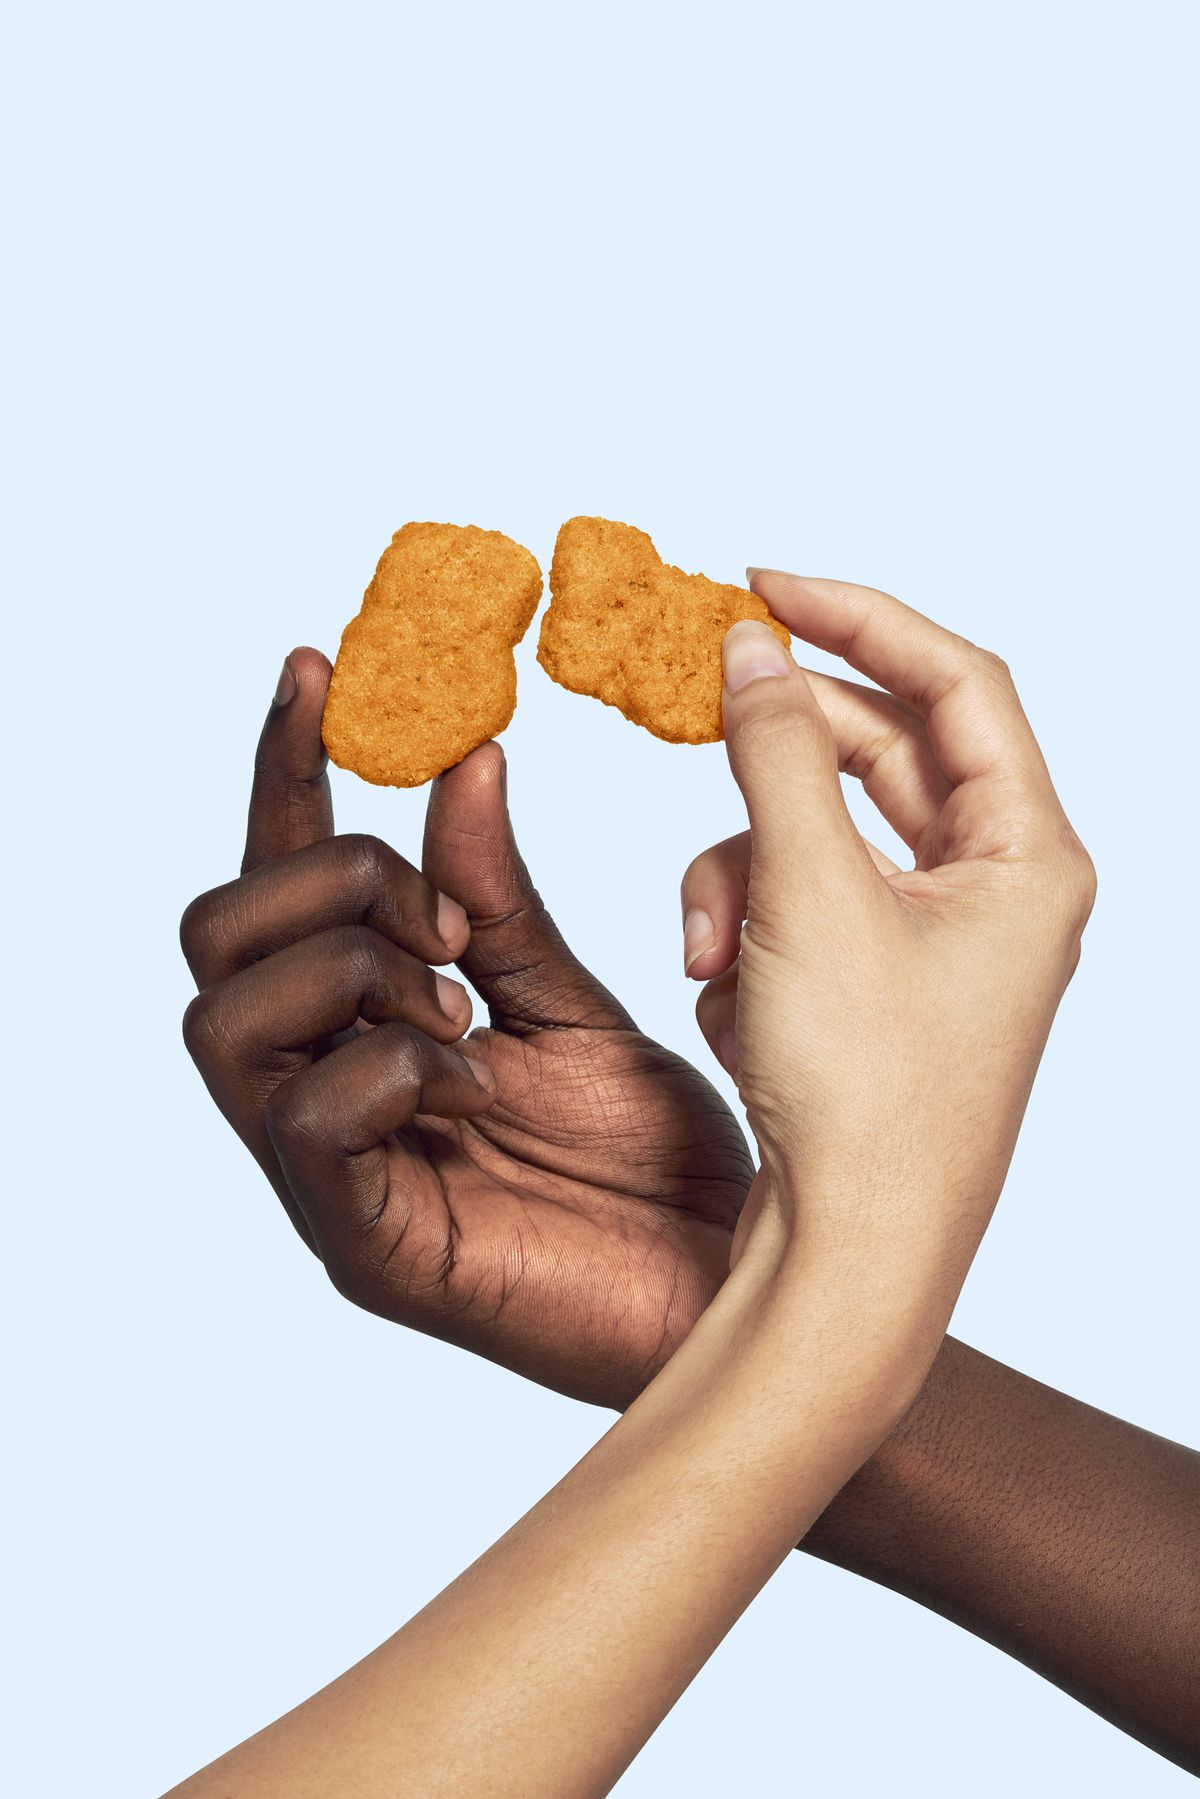 The hands of two people, crossed at the wrists, holding nuggets that are almost touching.